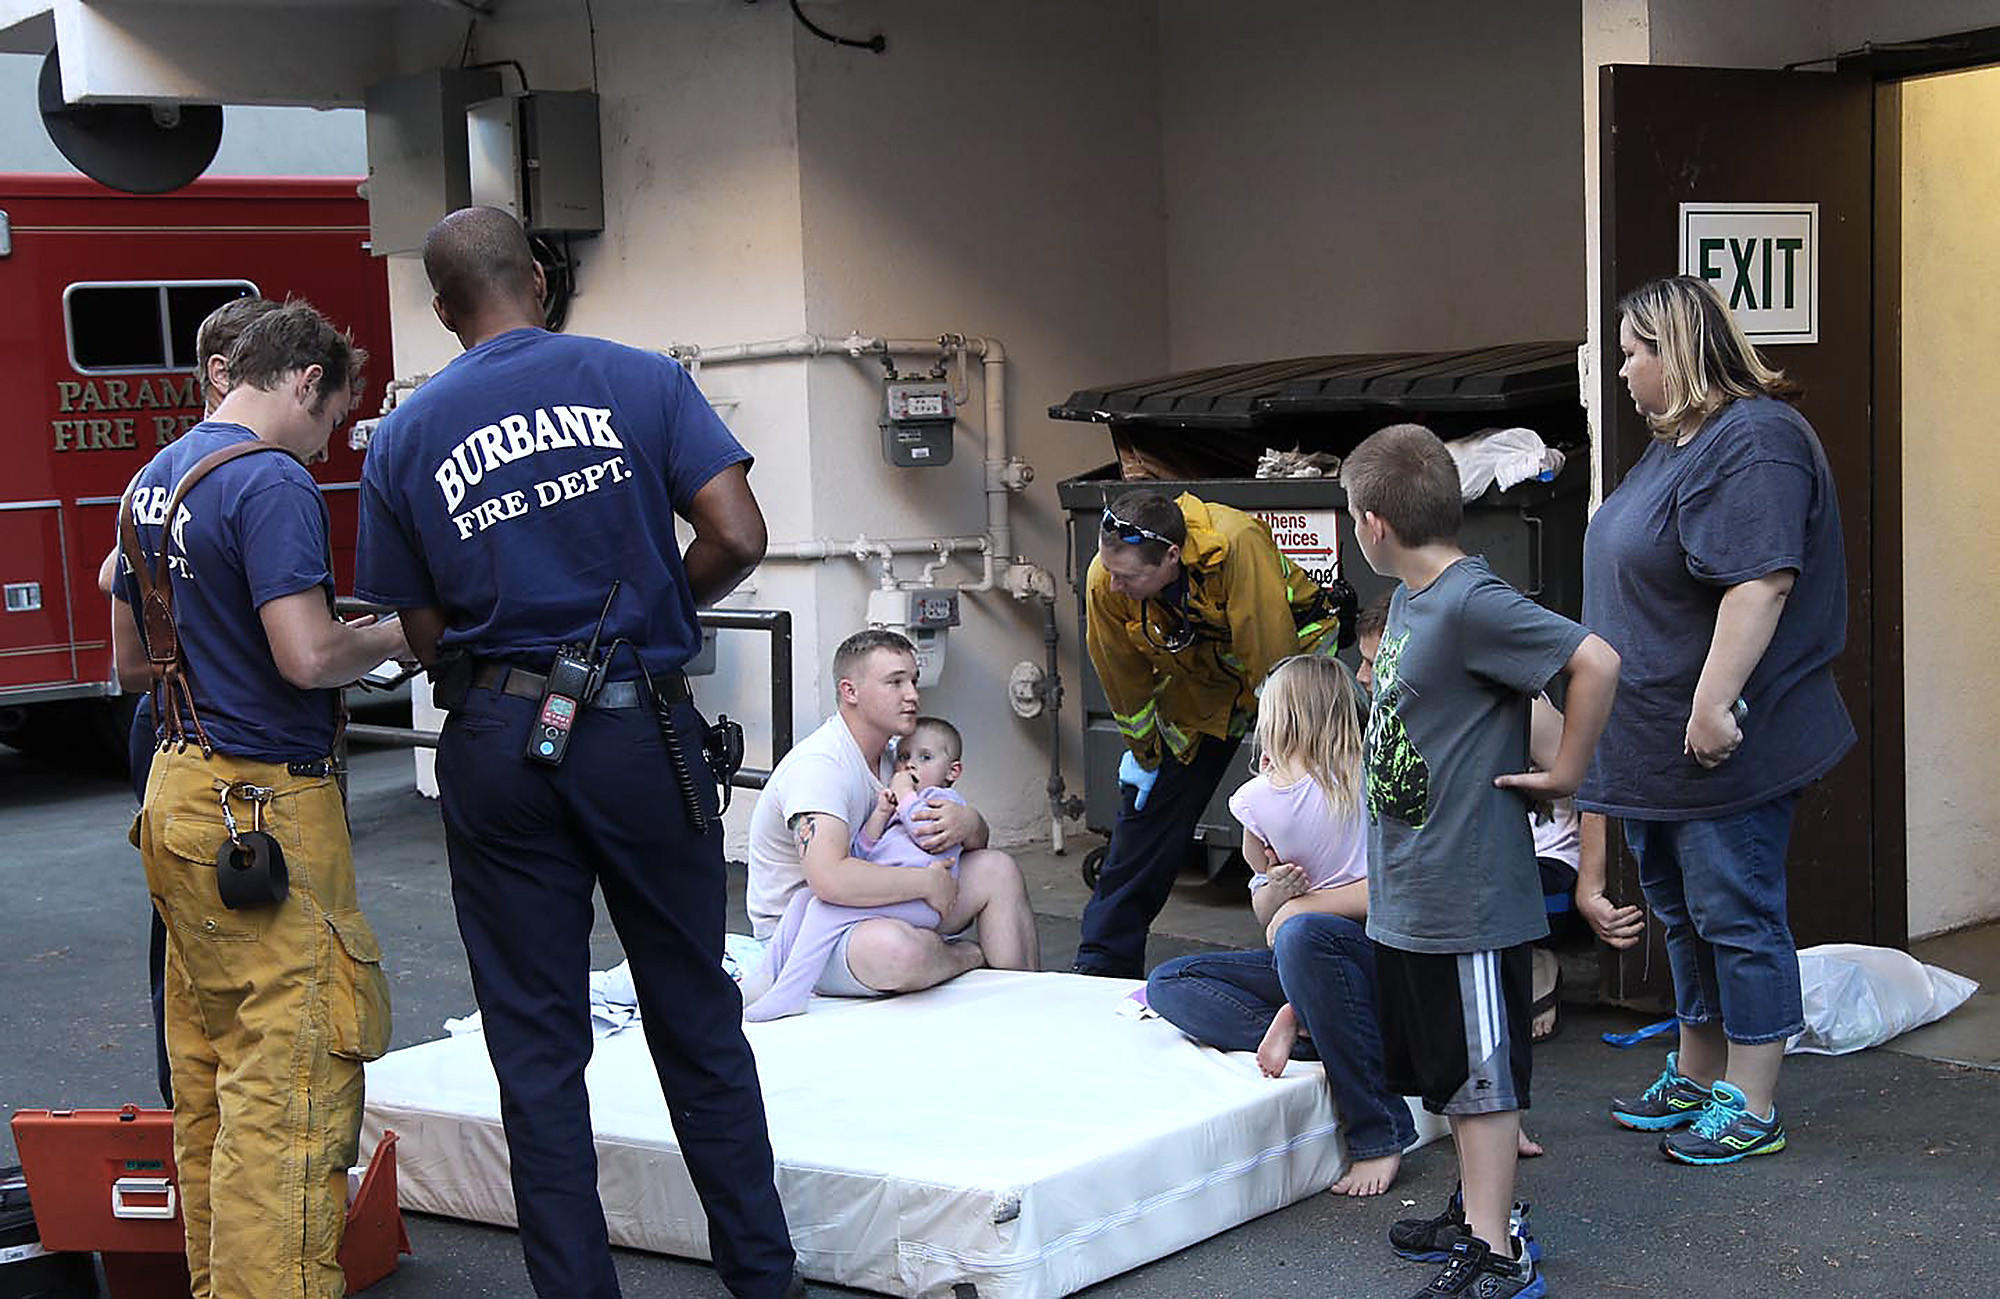 Firefighters examine a 3-year-old boy who fell out of a third-story window and was caught by Konrad and Jennifer Lightner on a mattress they were moving in the 4100 block of Kling Street in Burbank on Sunday, March 16, 2014.